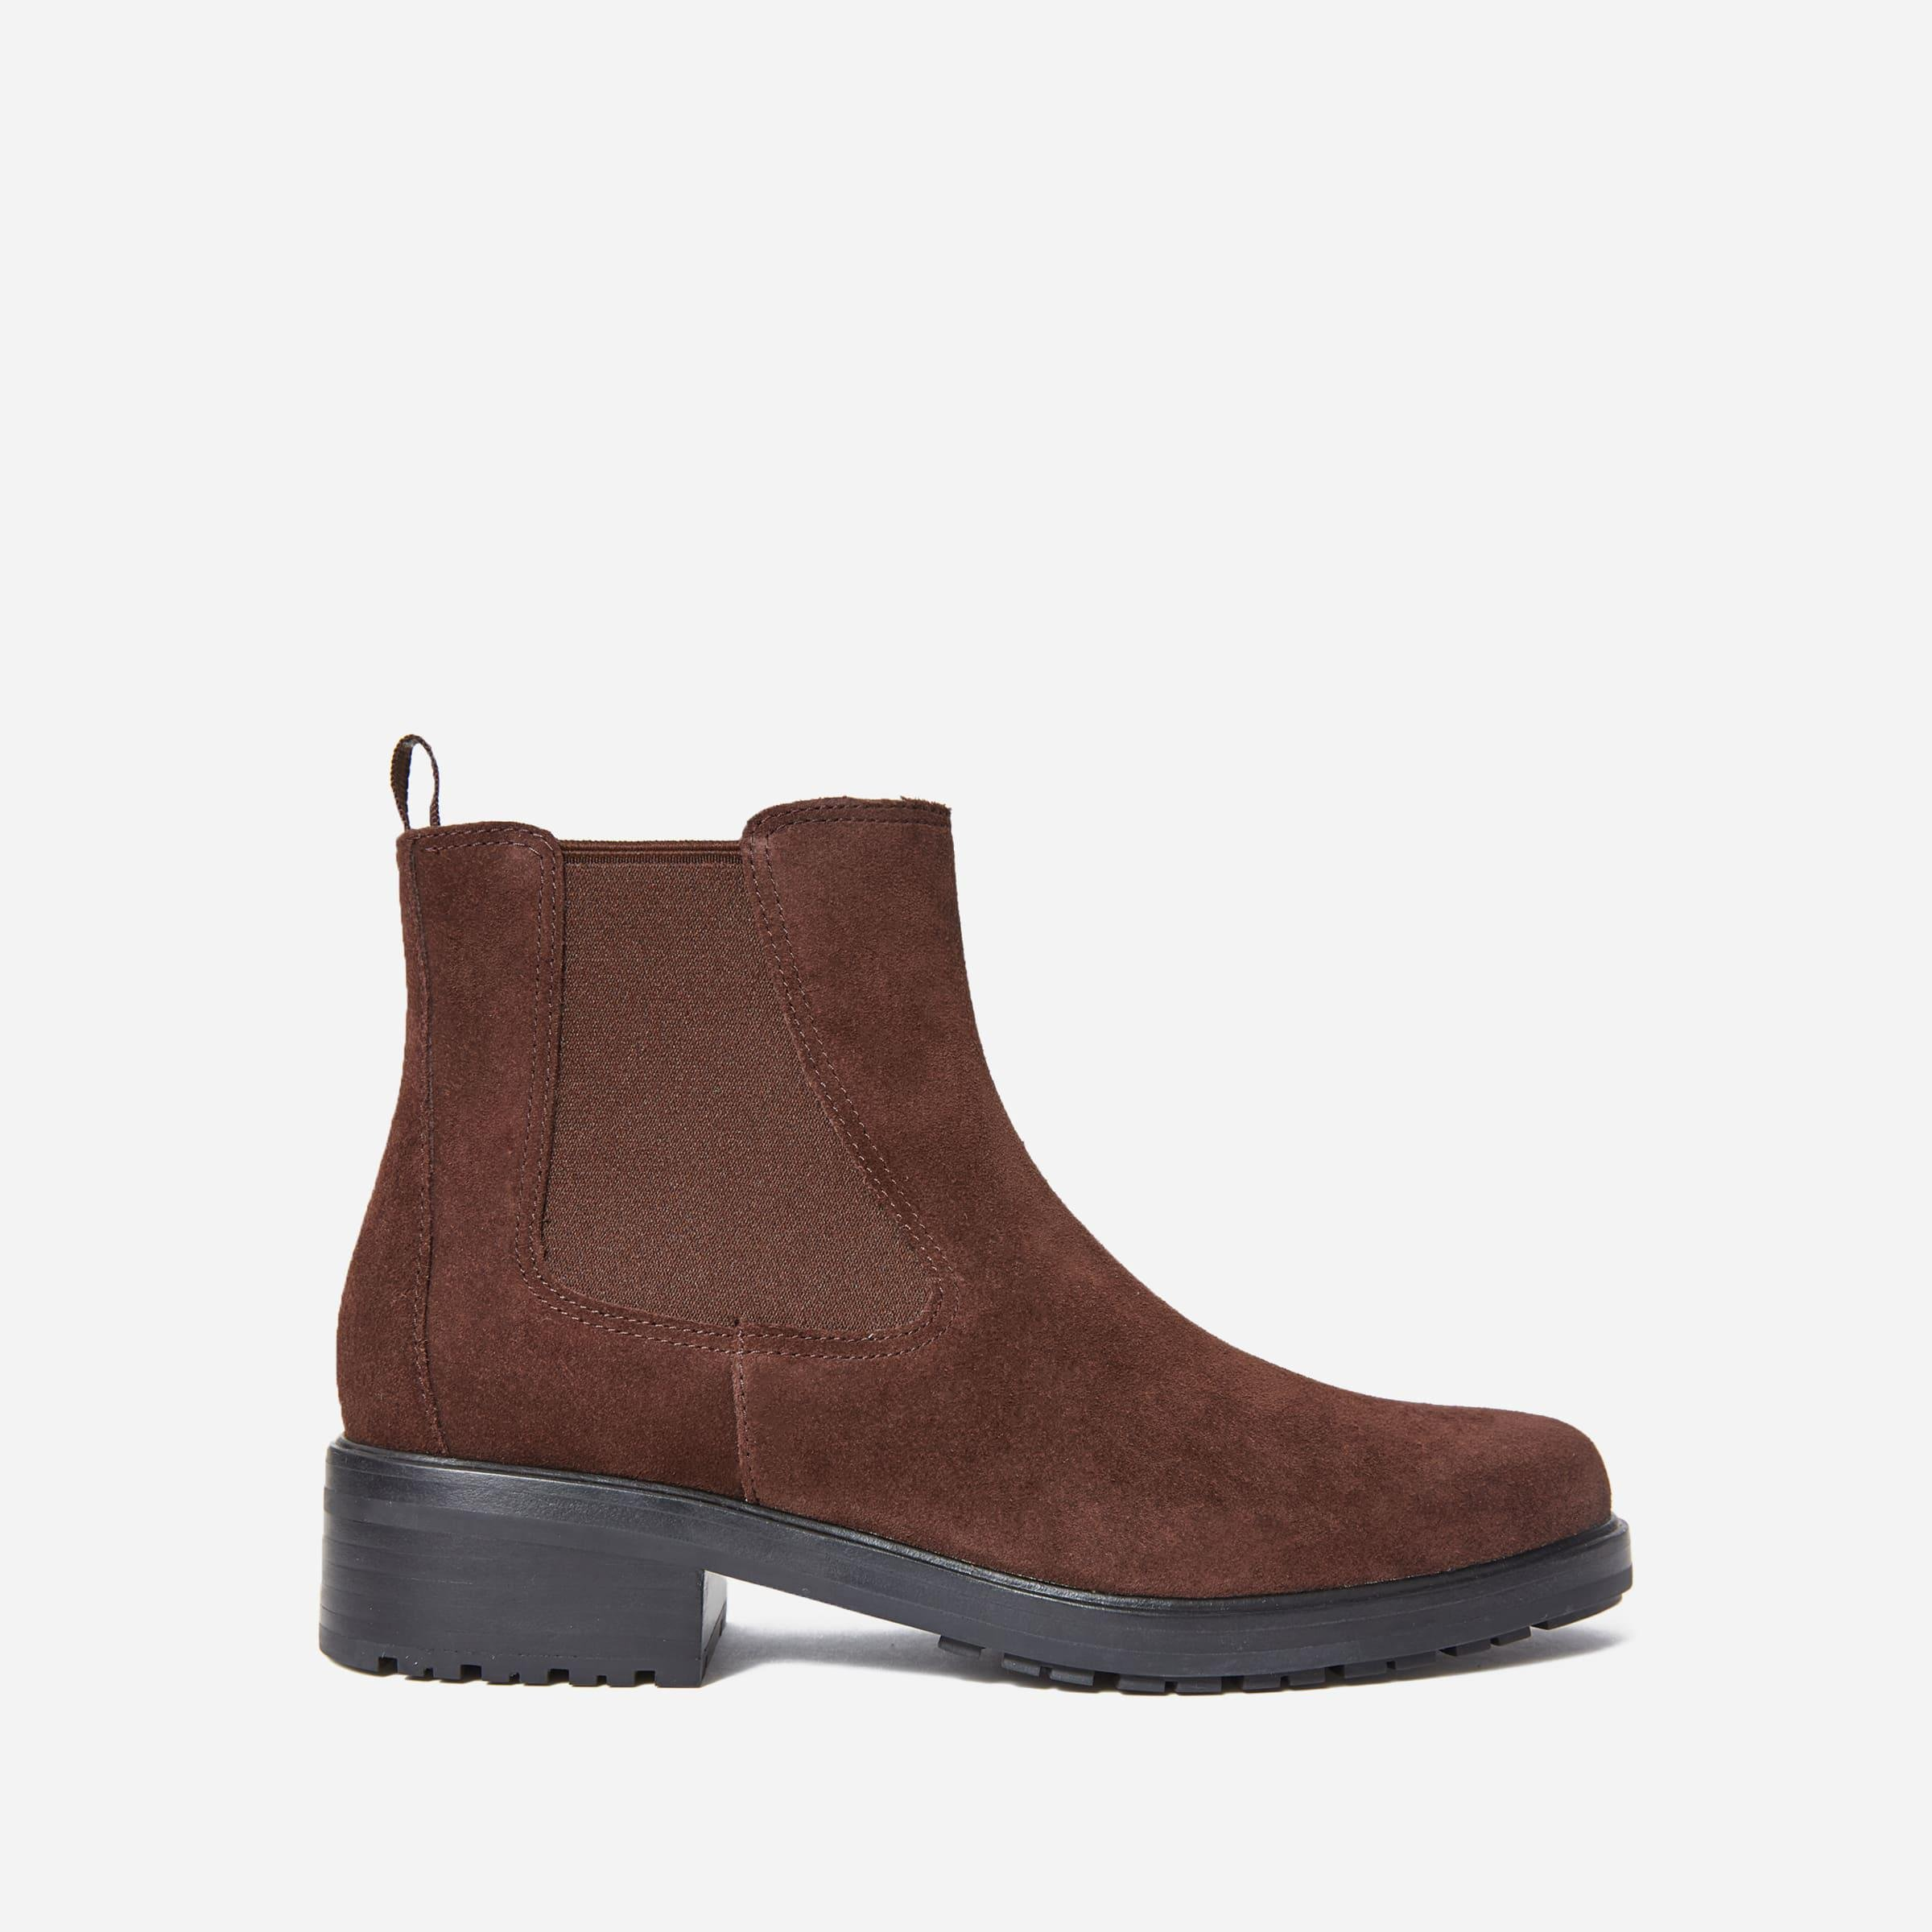 The Modern Utility Chelsea Boot